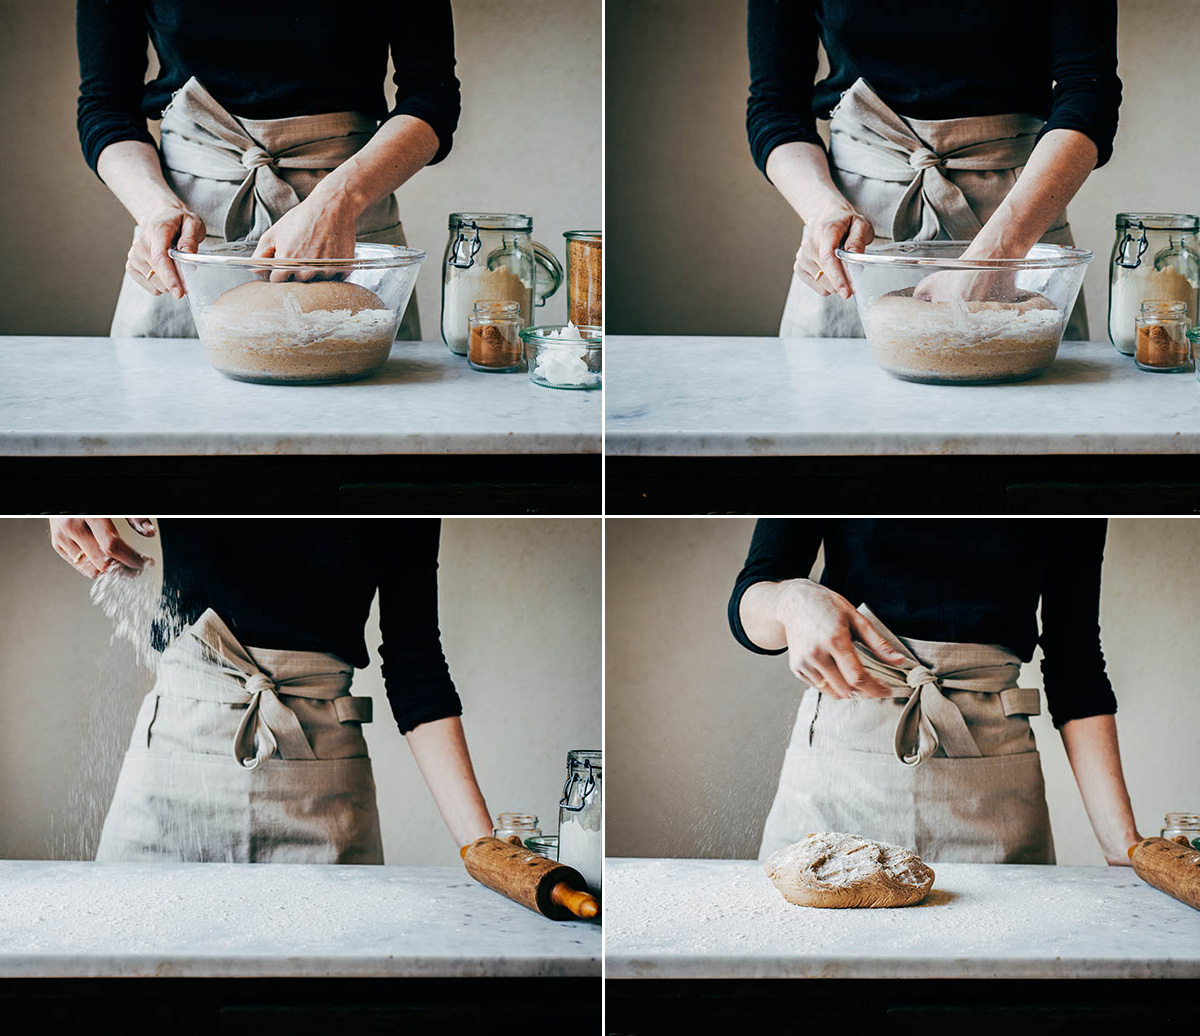 Steps of punching down dough and sprinkling surface and dough with flour before rolling.